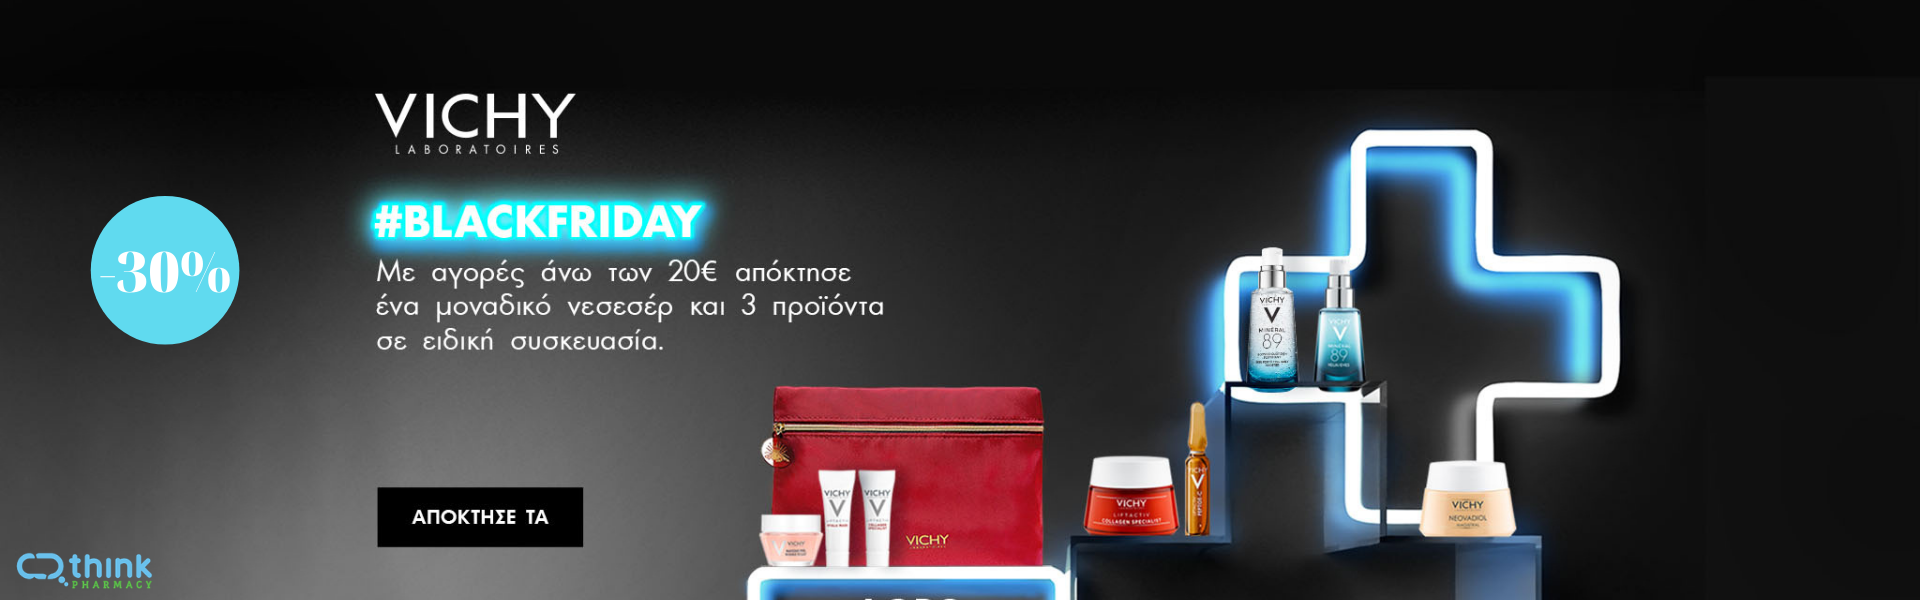 Vichy Black Friday